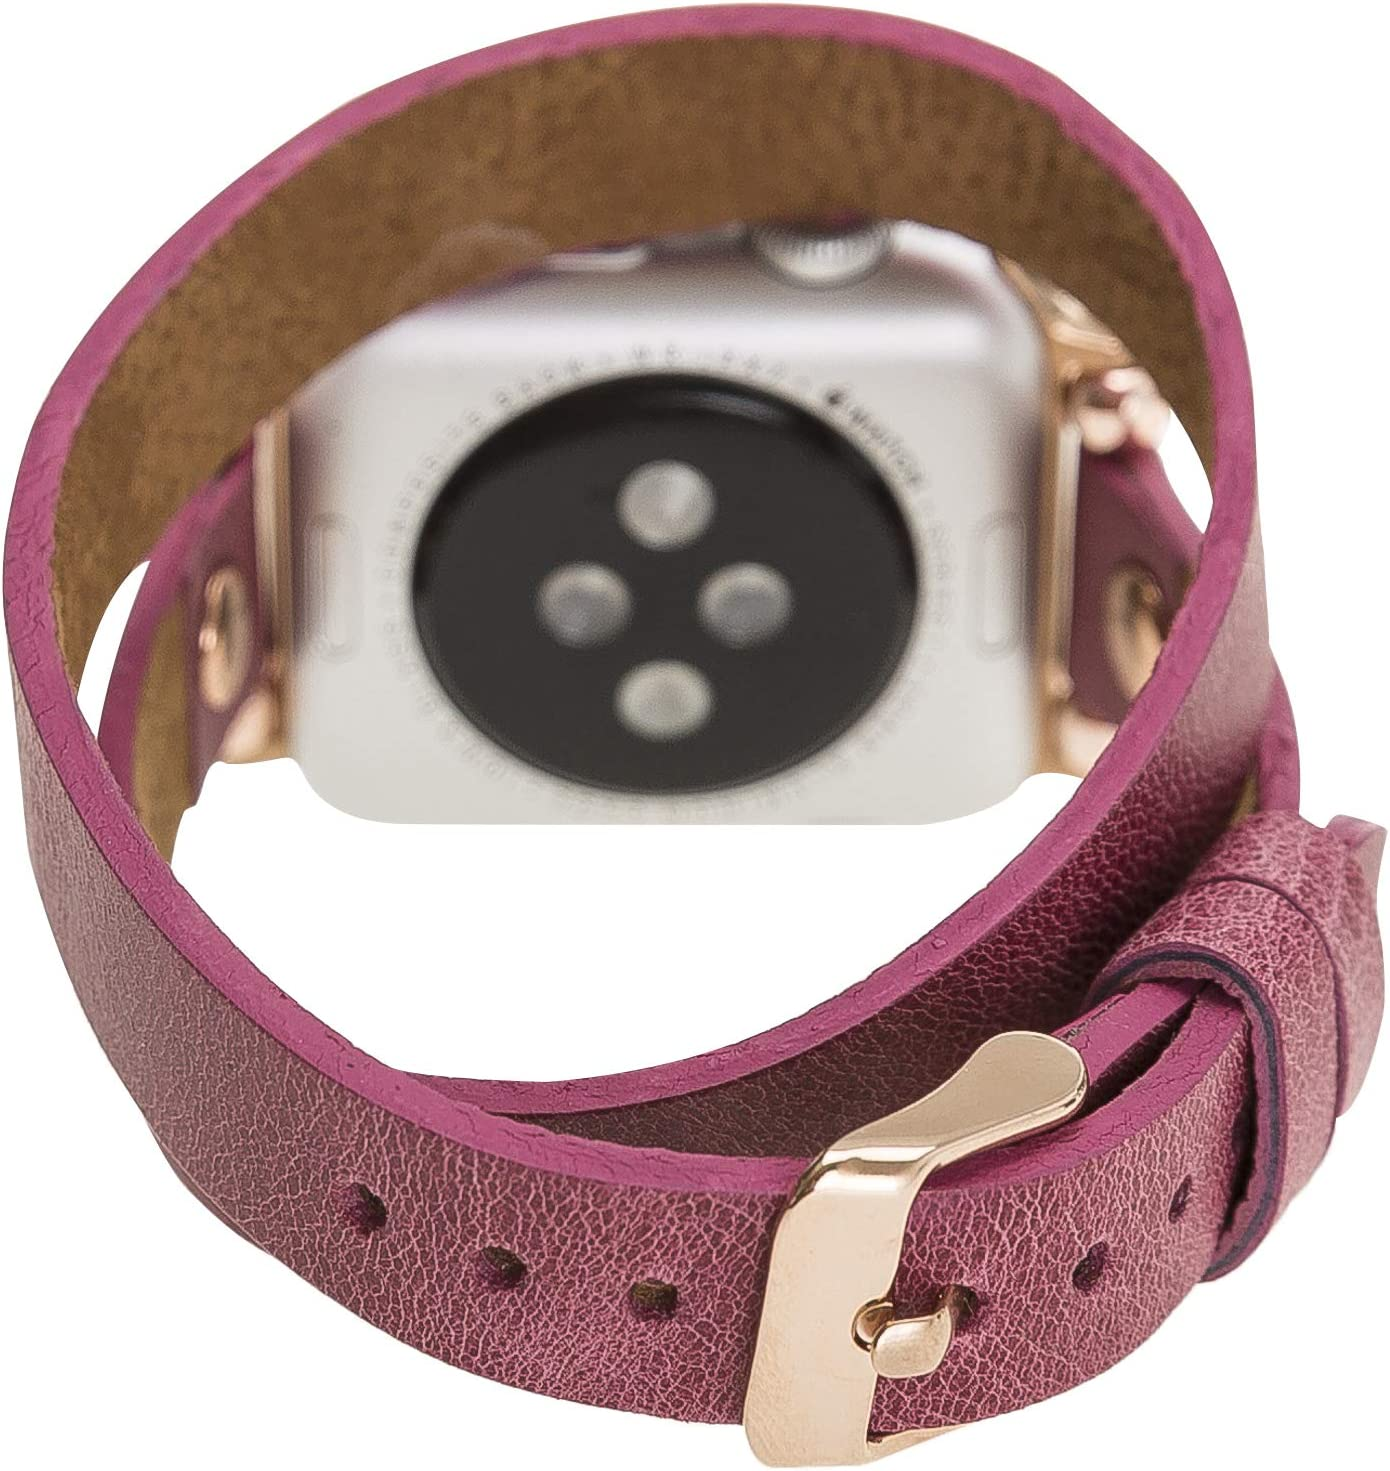 Renna Genuine Leather Slim Style Band 44mm 42mm 40mm 38mm, Handmade Leather Band for Women Men Strap Bracelet for iWatch series new SE, 6 and 5 4 3 2 1 (Claret Red Double Wrap, Rose Gold Connector, 38mm-40mm)